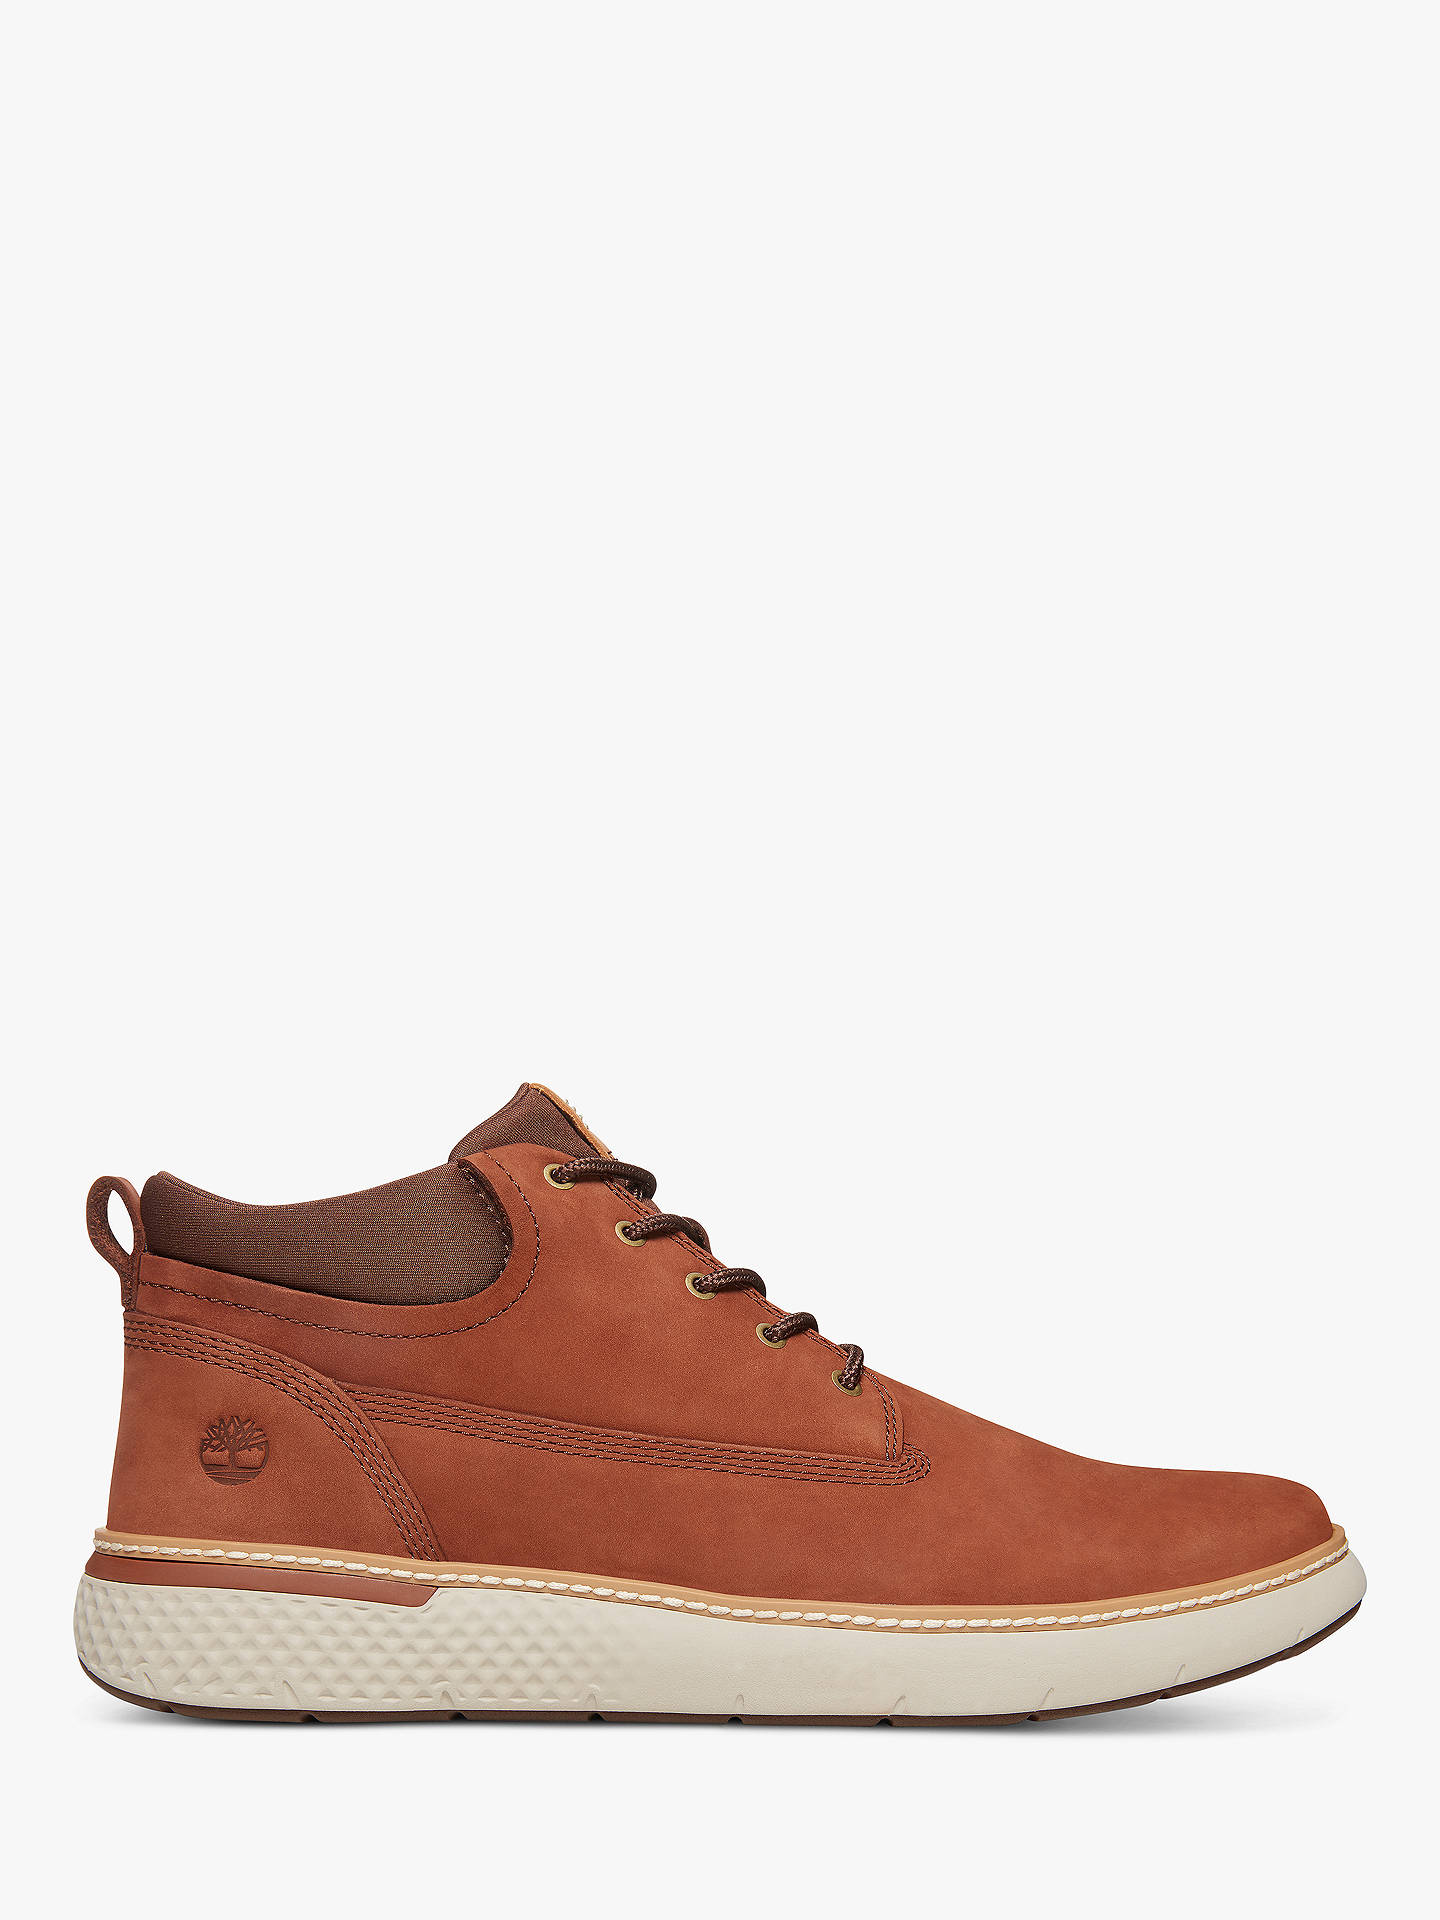 Buy Timberland Cross Mark Chukka Boots, Brown, 10 Online at johnlewis.com